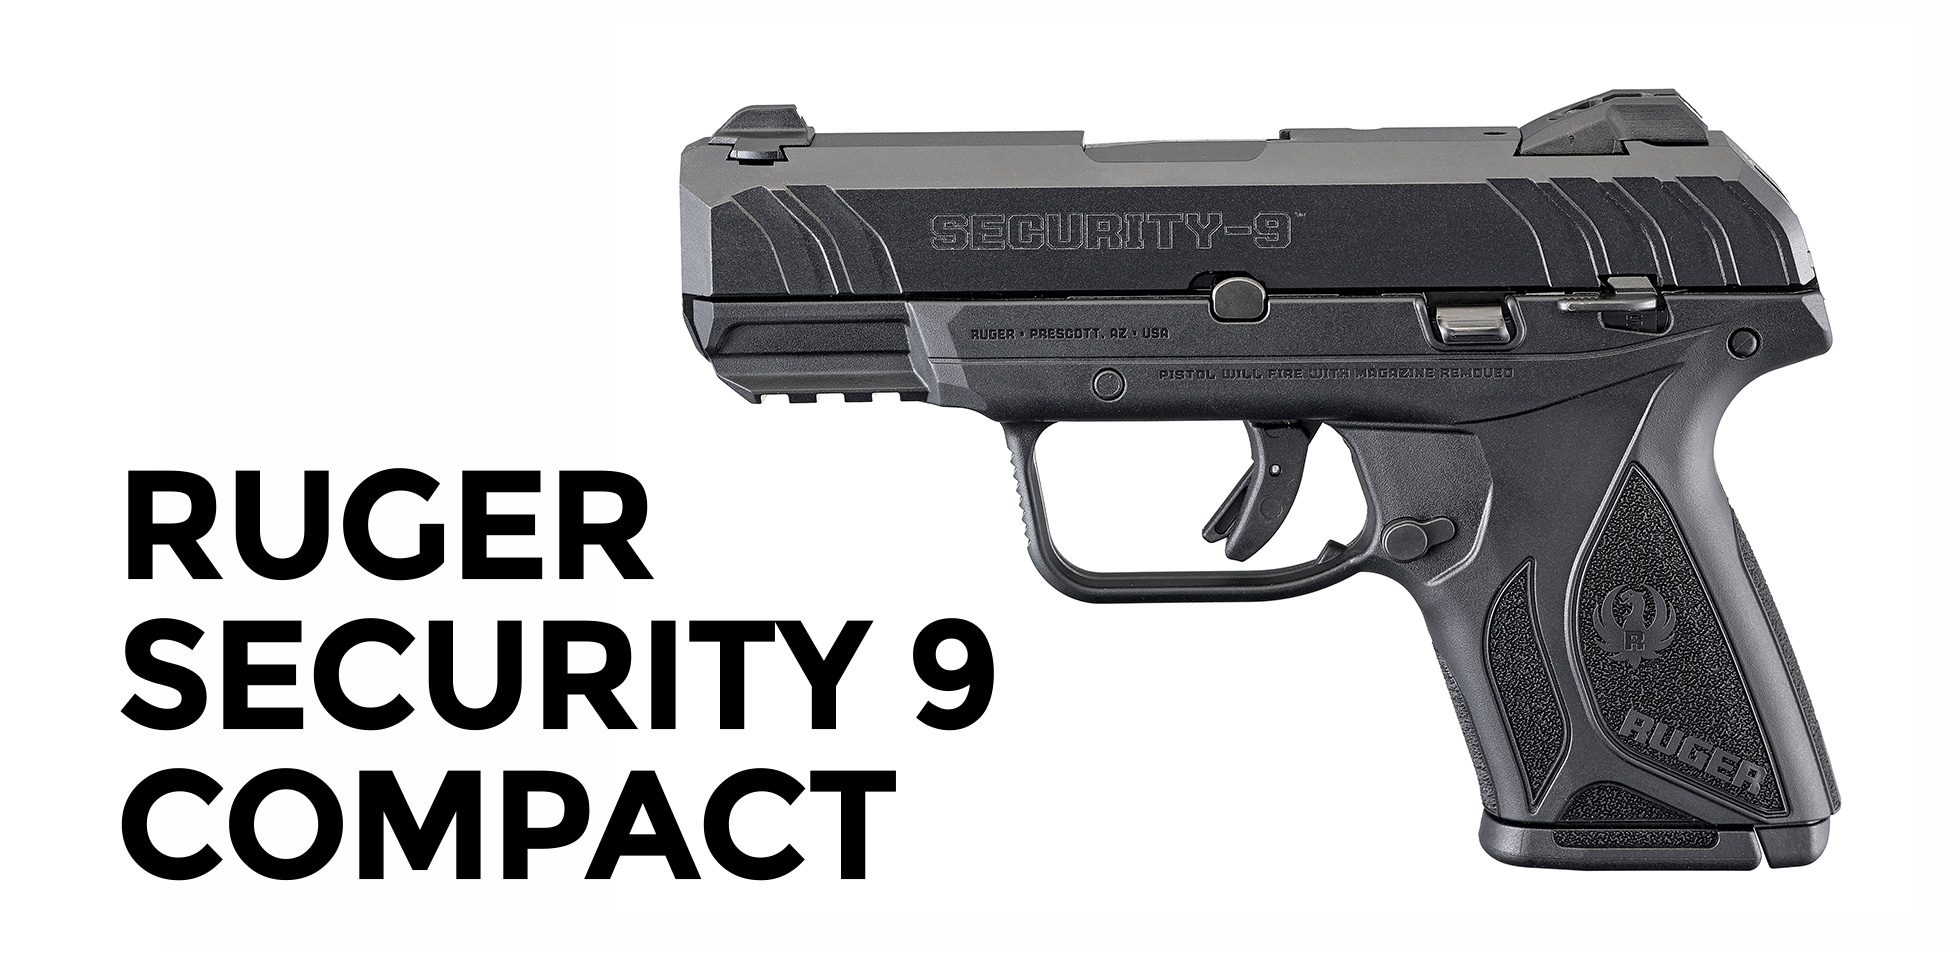 Ruger Security 9 Compact is a cheap gun that offers great value